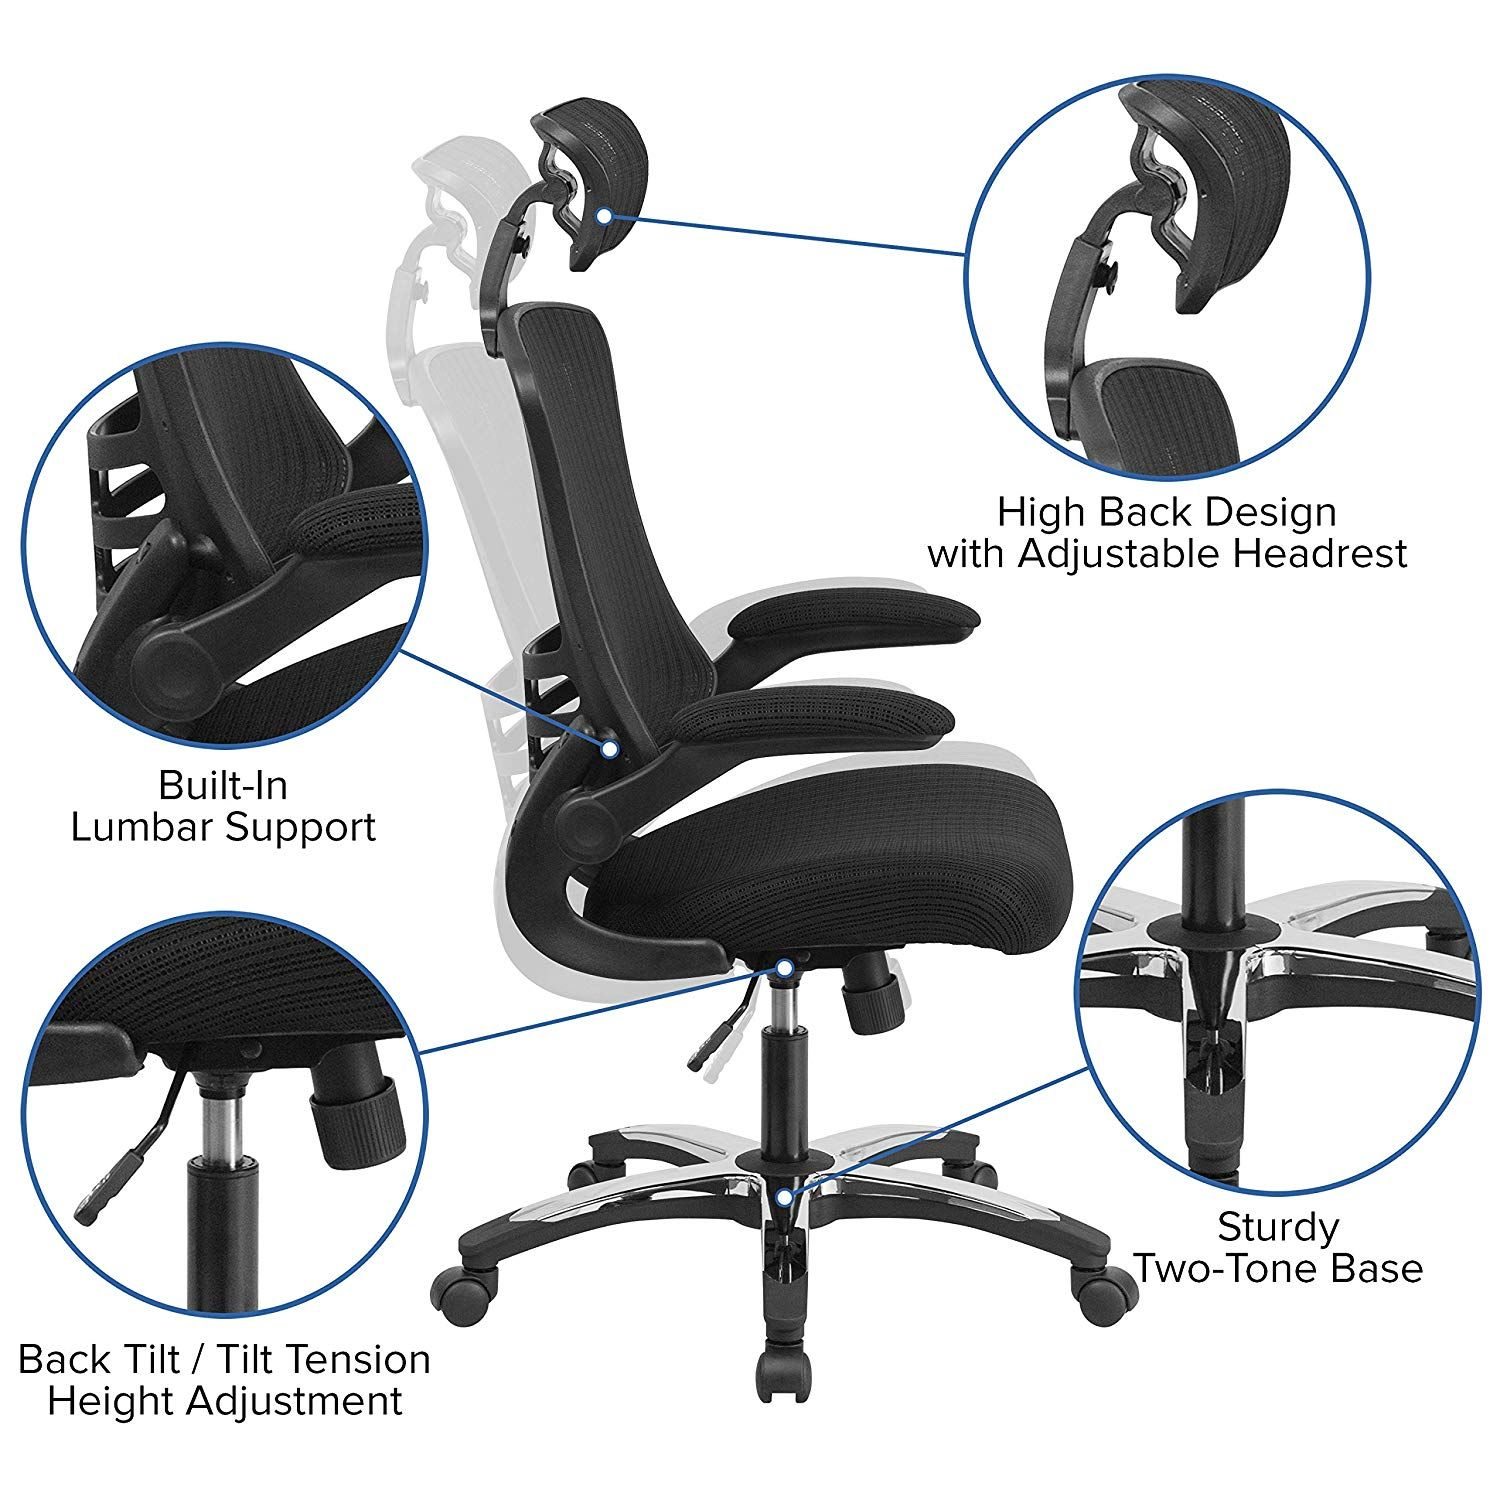 High Back Office Chair High Back Executive Office And Desk Chair With Adjustable Headrest Furniture Collection Mesh Computer Chair Swivel Office Chair